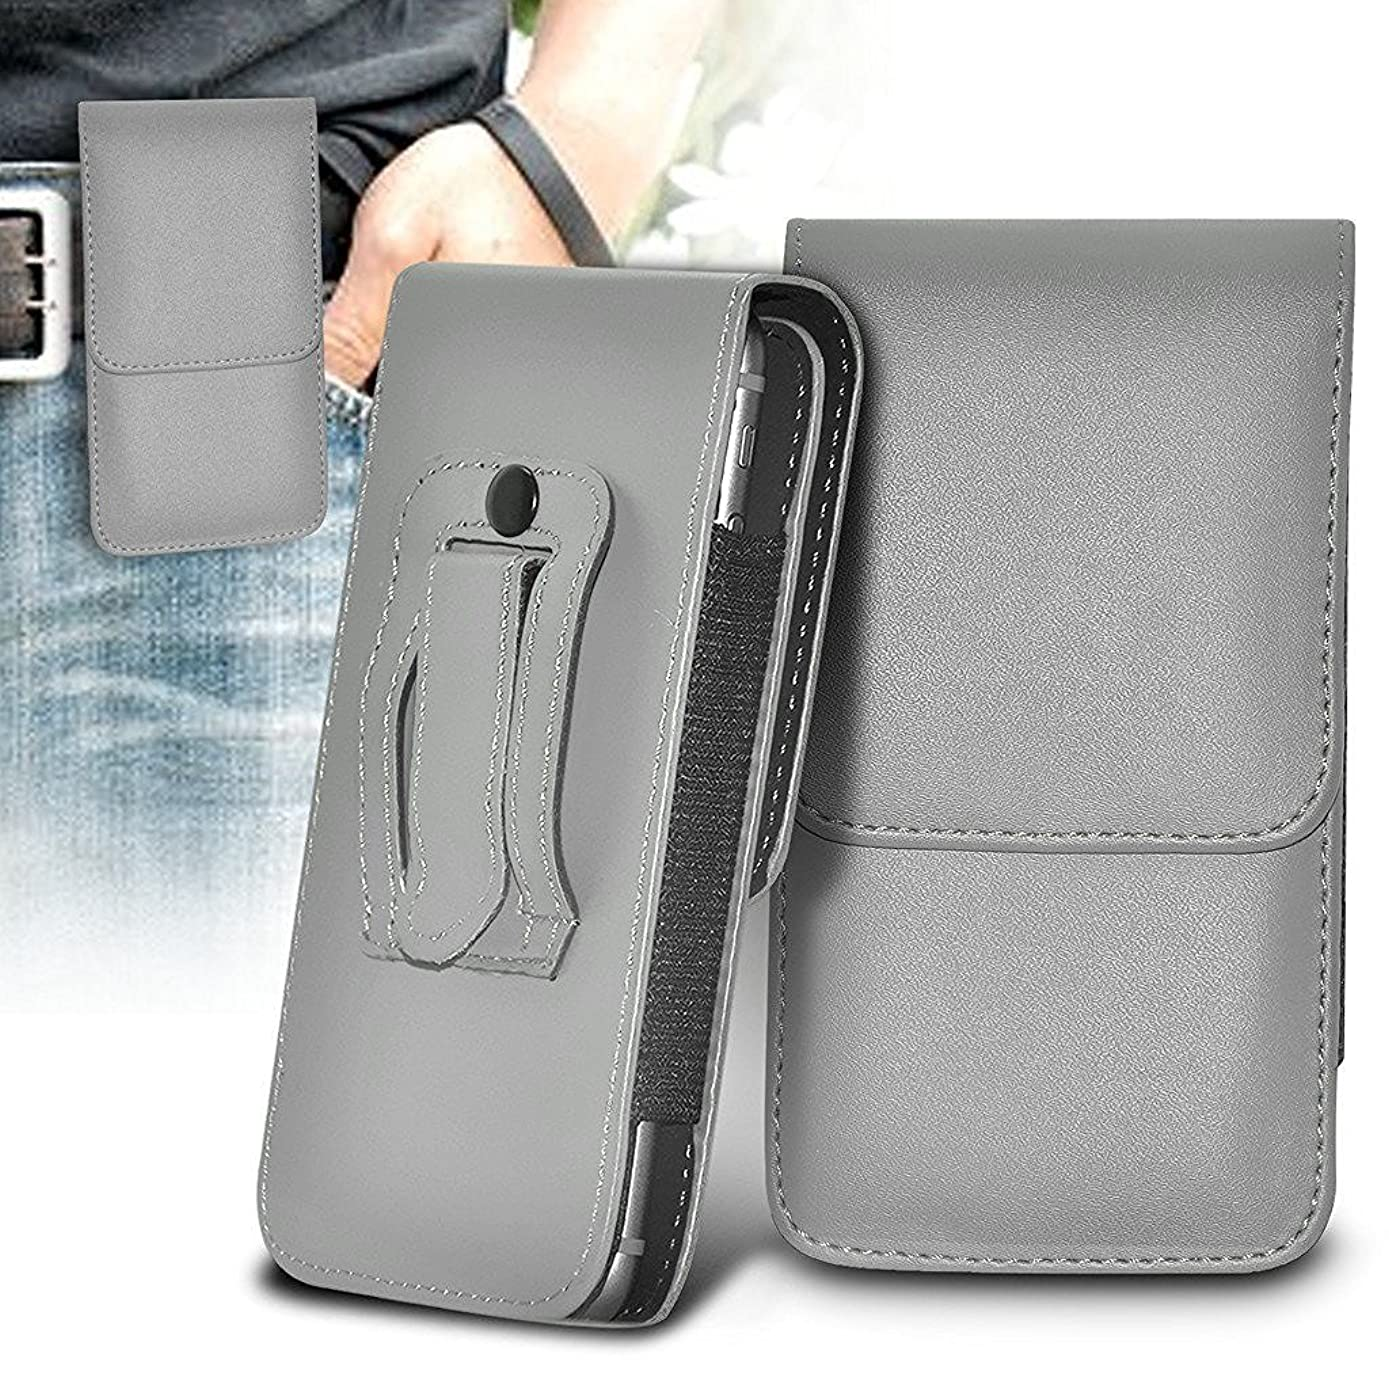 ONX3 (Grey) Sony Xperia XA (2017) Case Premium Vertical Faux Leather Belt Holster Pouch Cover